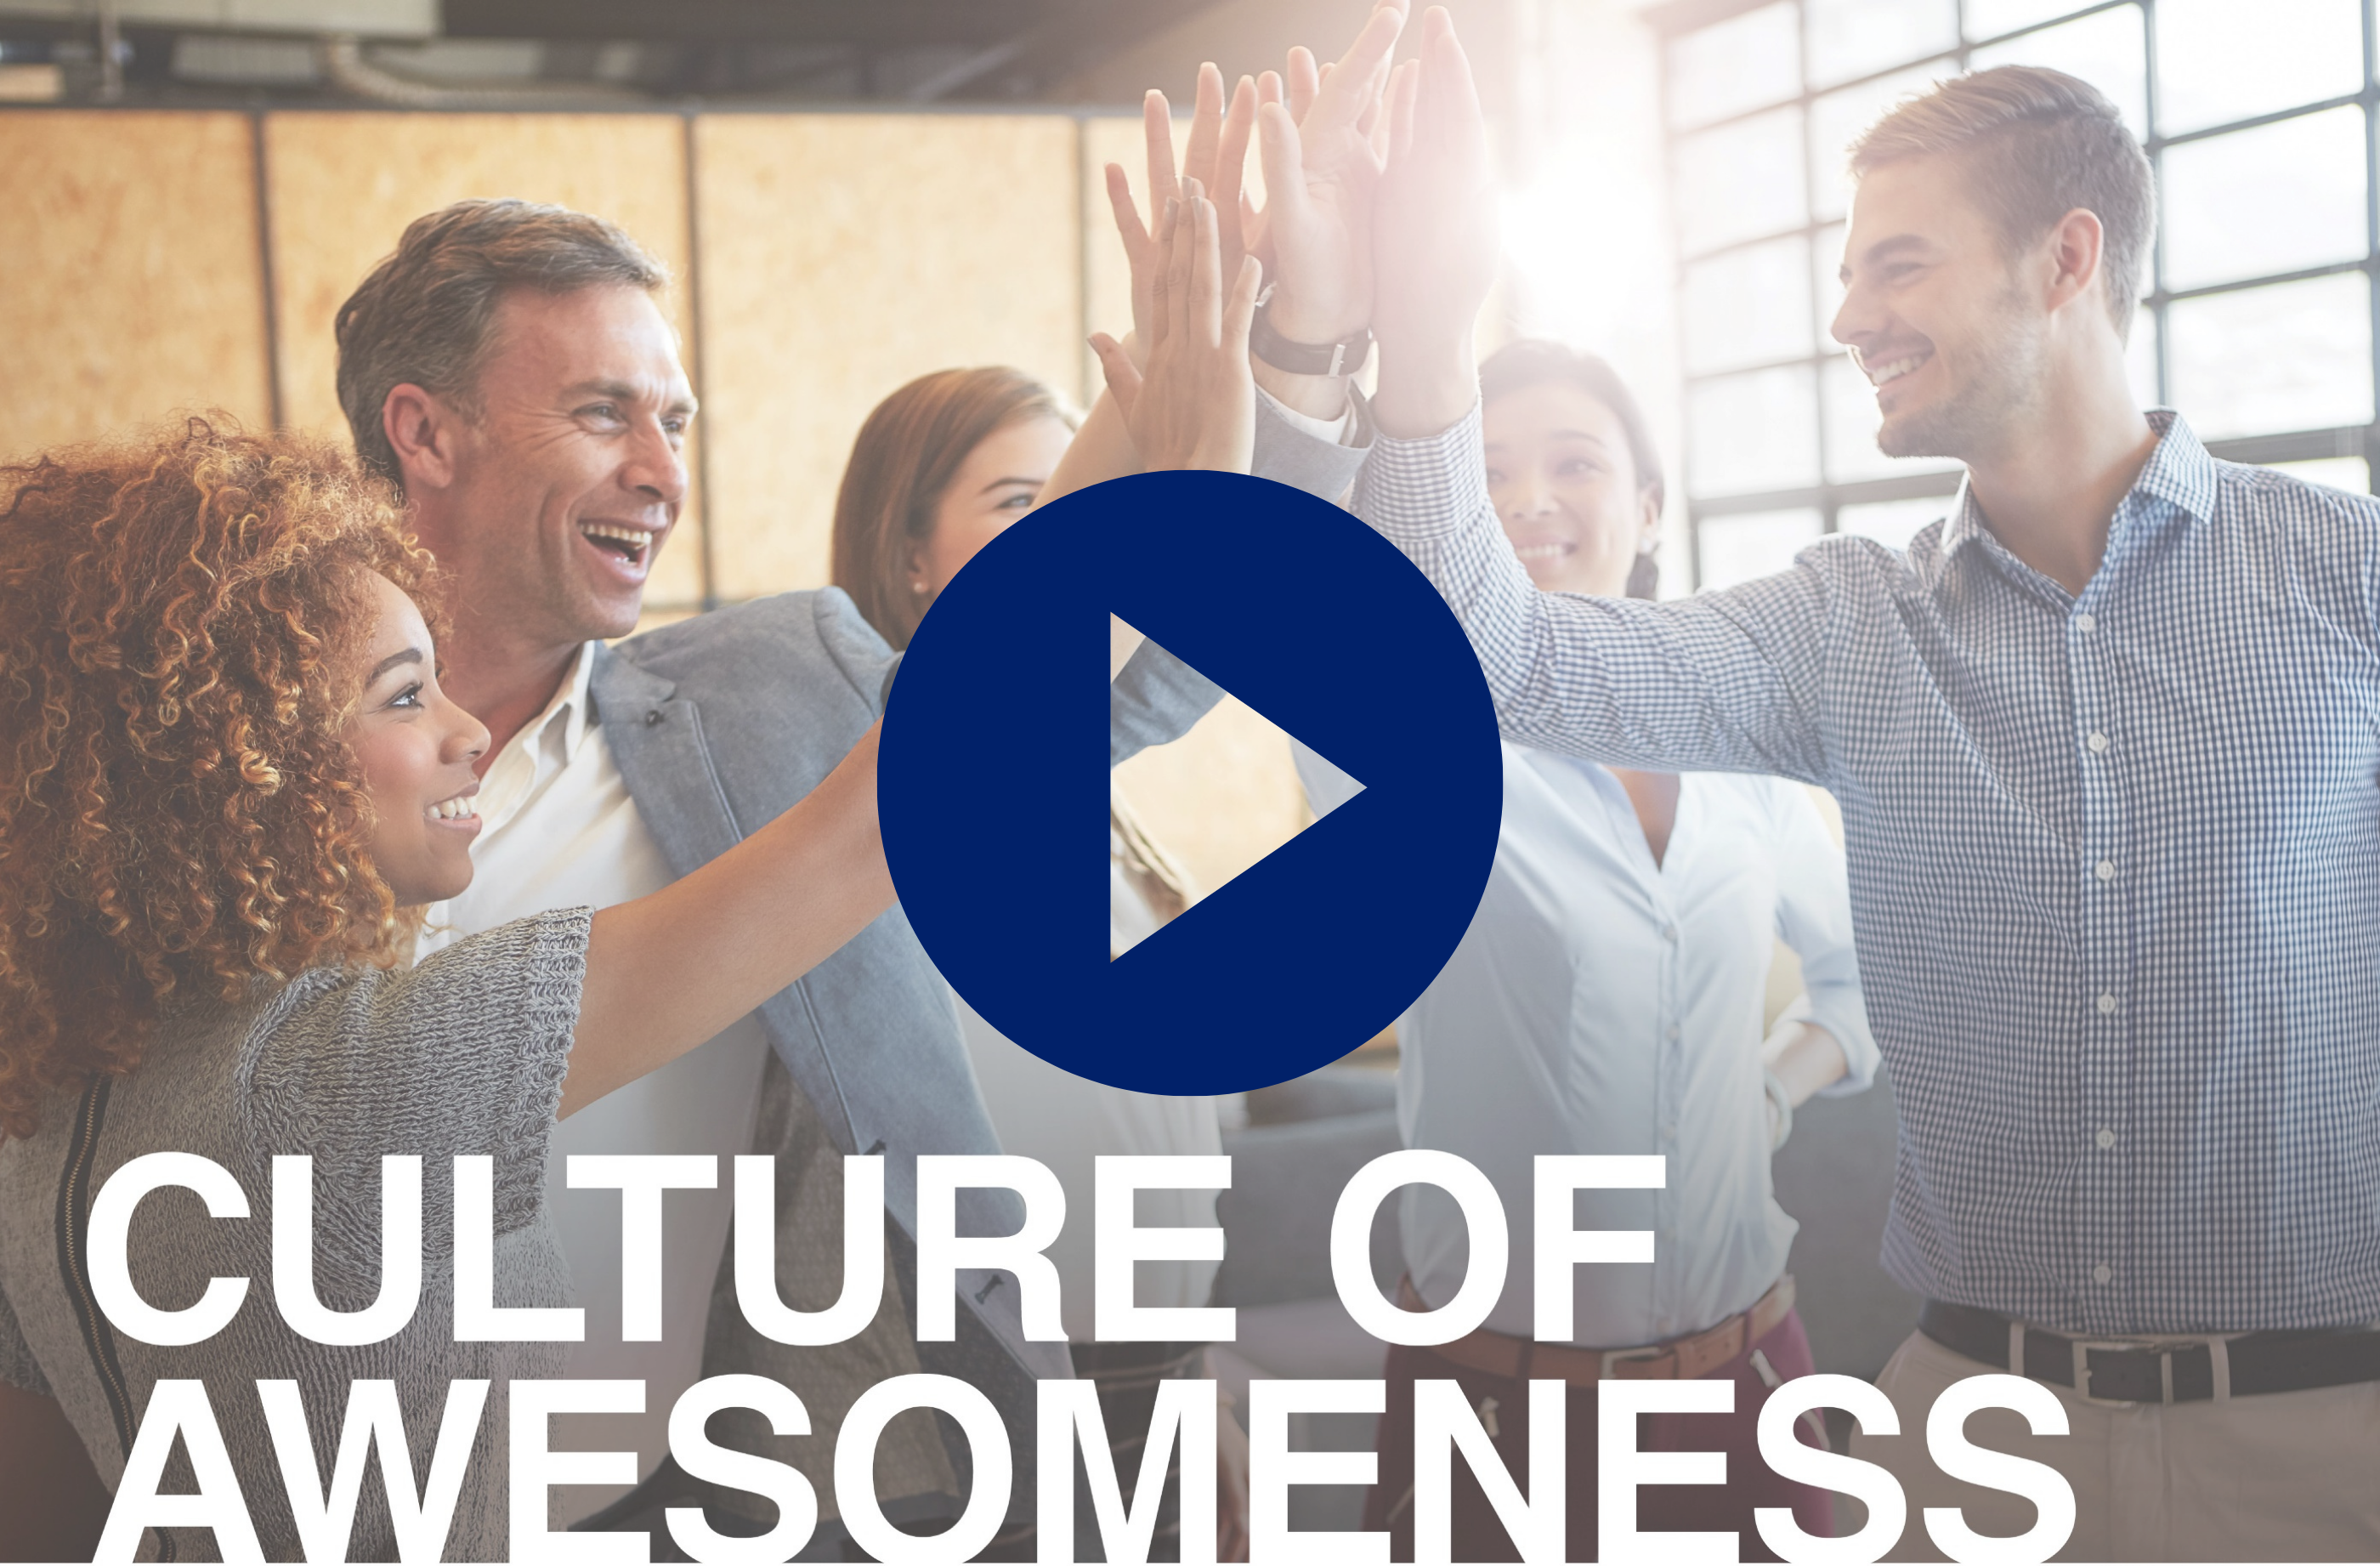 Our Culture of Awesomeness at Coldwell Banker Placer County